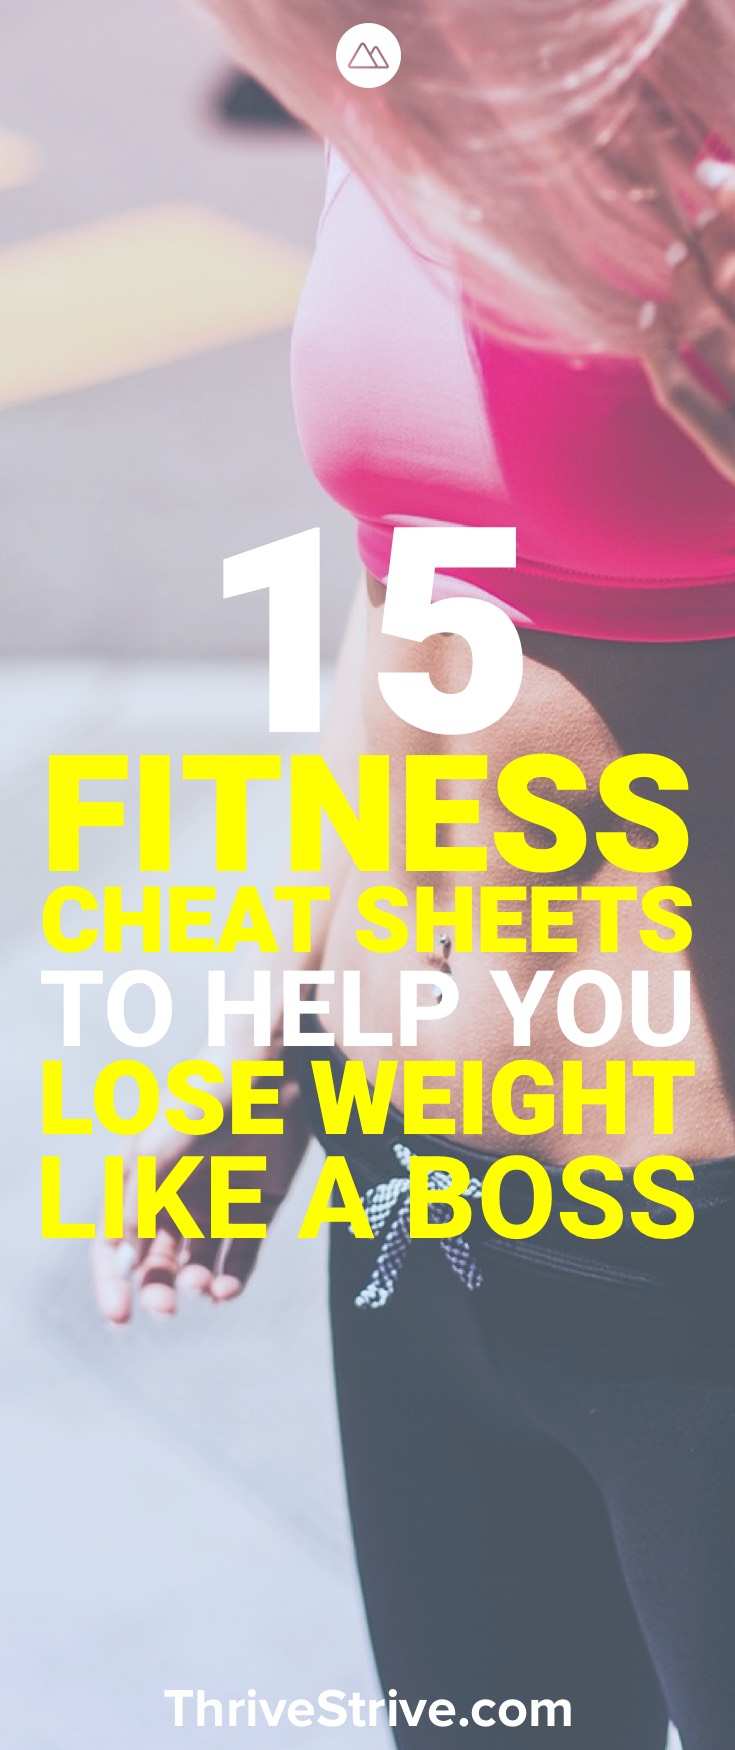 15 Fitness Cheat Sheets To Help You Work Out Like A Boss On Pinterest Workout Circuit Workouts And Strength Share